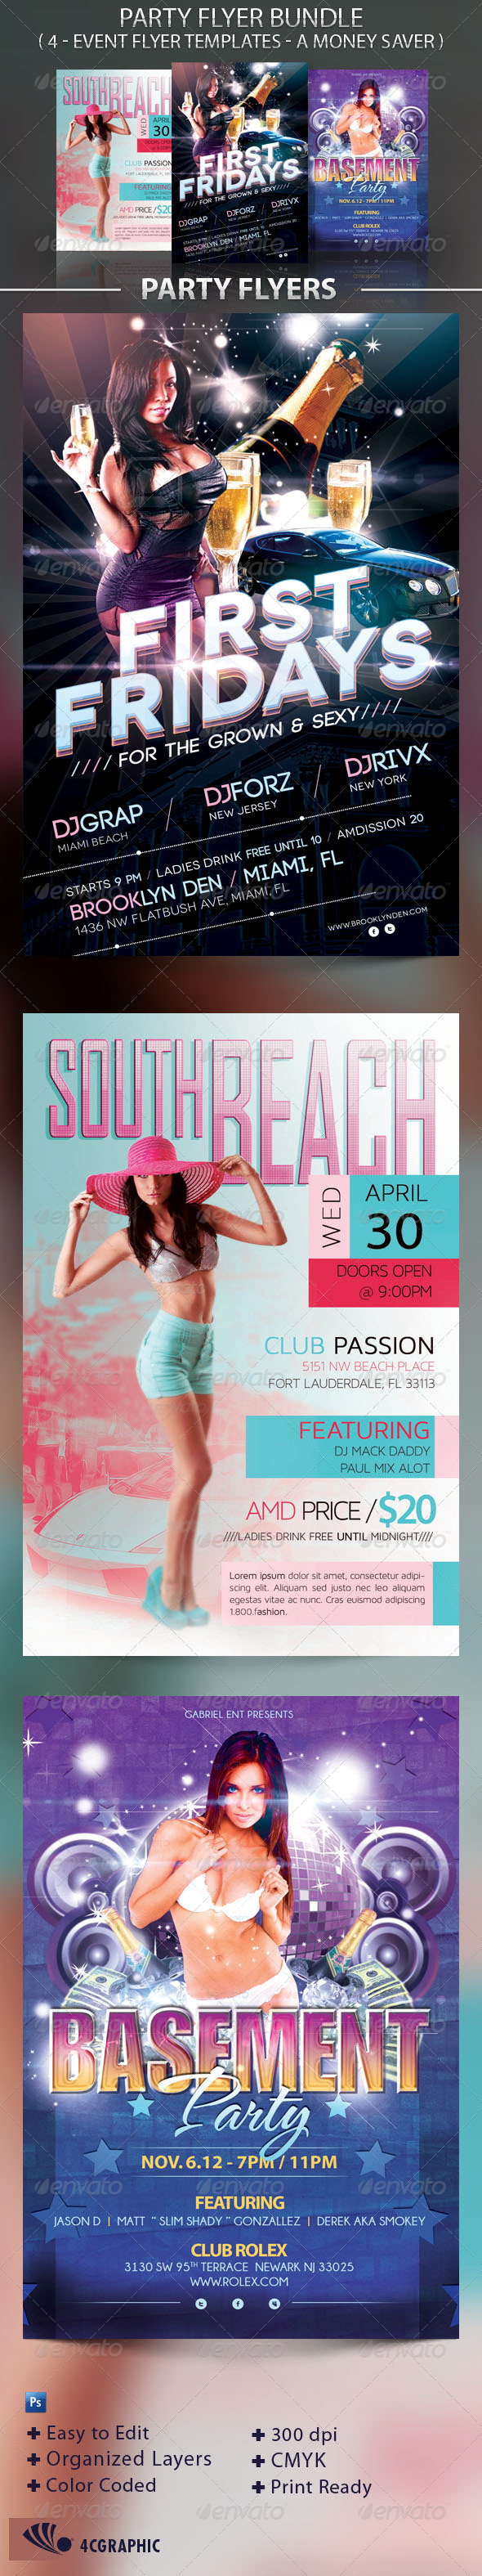 Party Flyer Template Bundle - Events Flyers